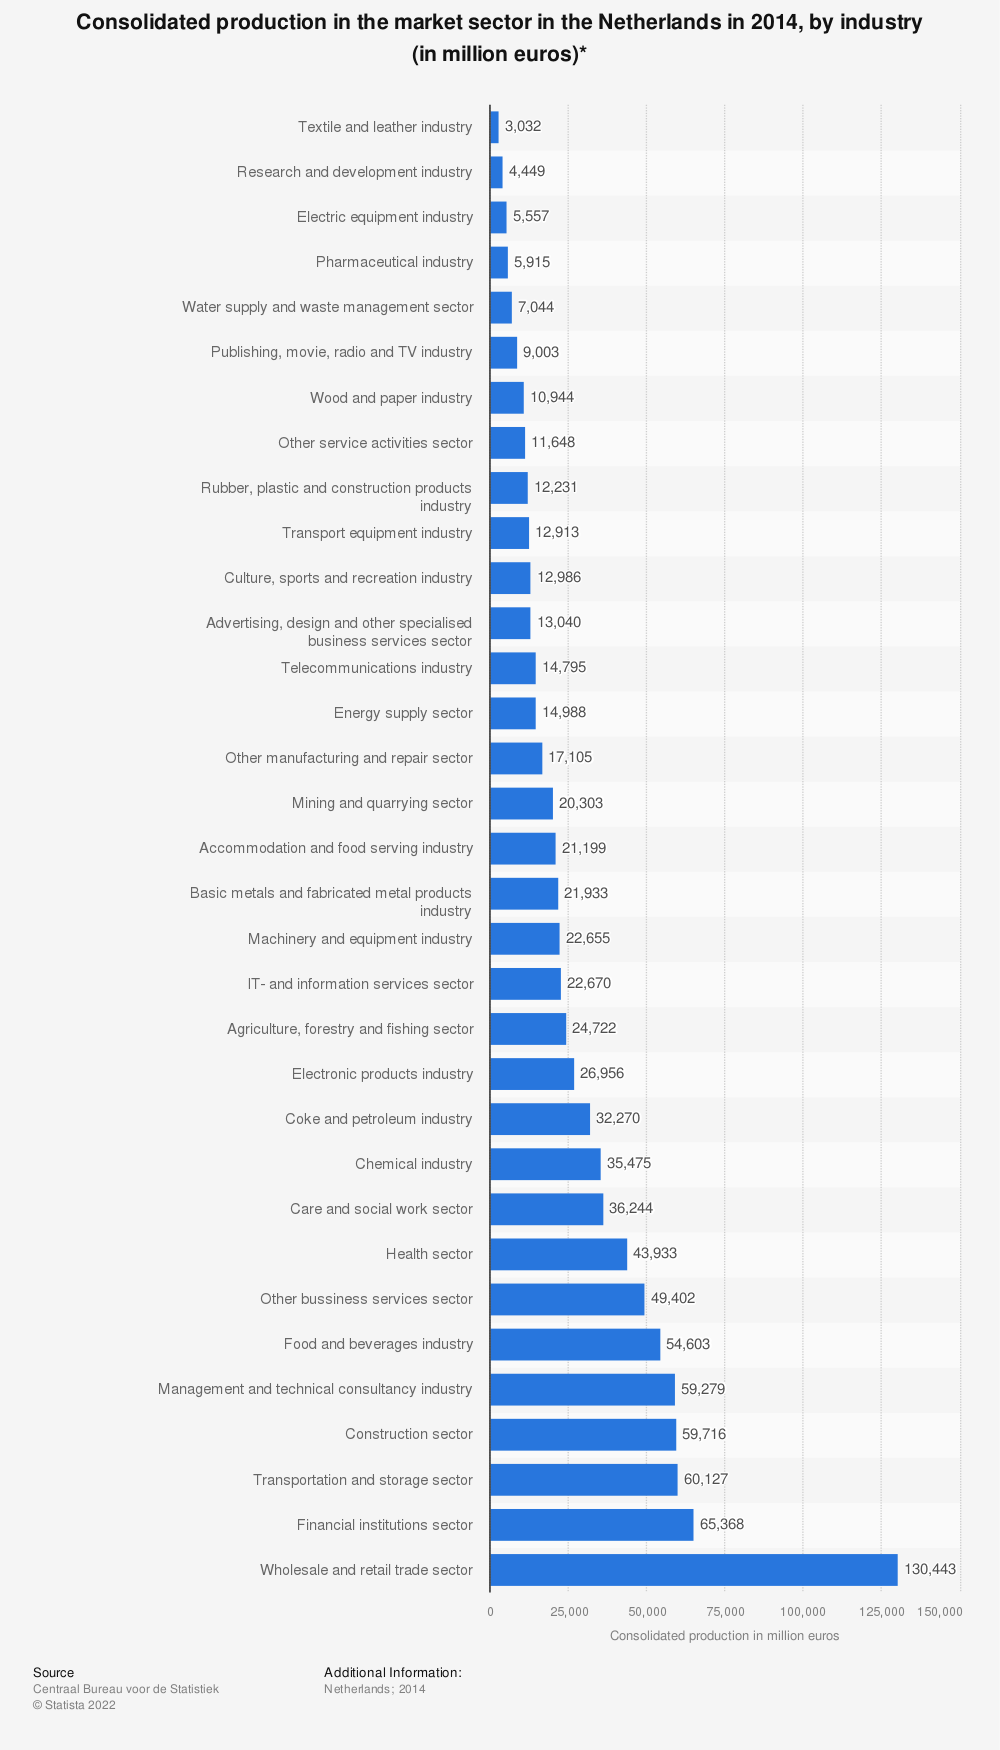 Statistic: Consolidated production in the market sector in the Netherlands in 2014, by industry (in million euros)* | Statista